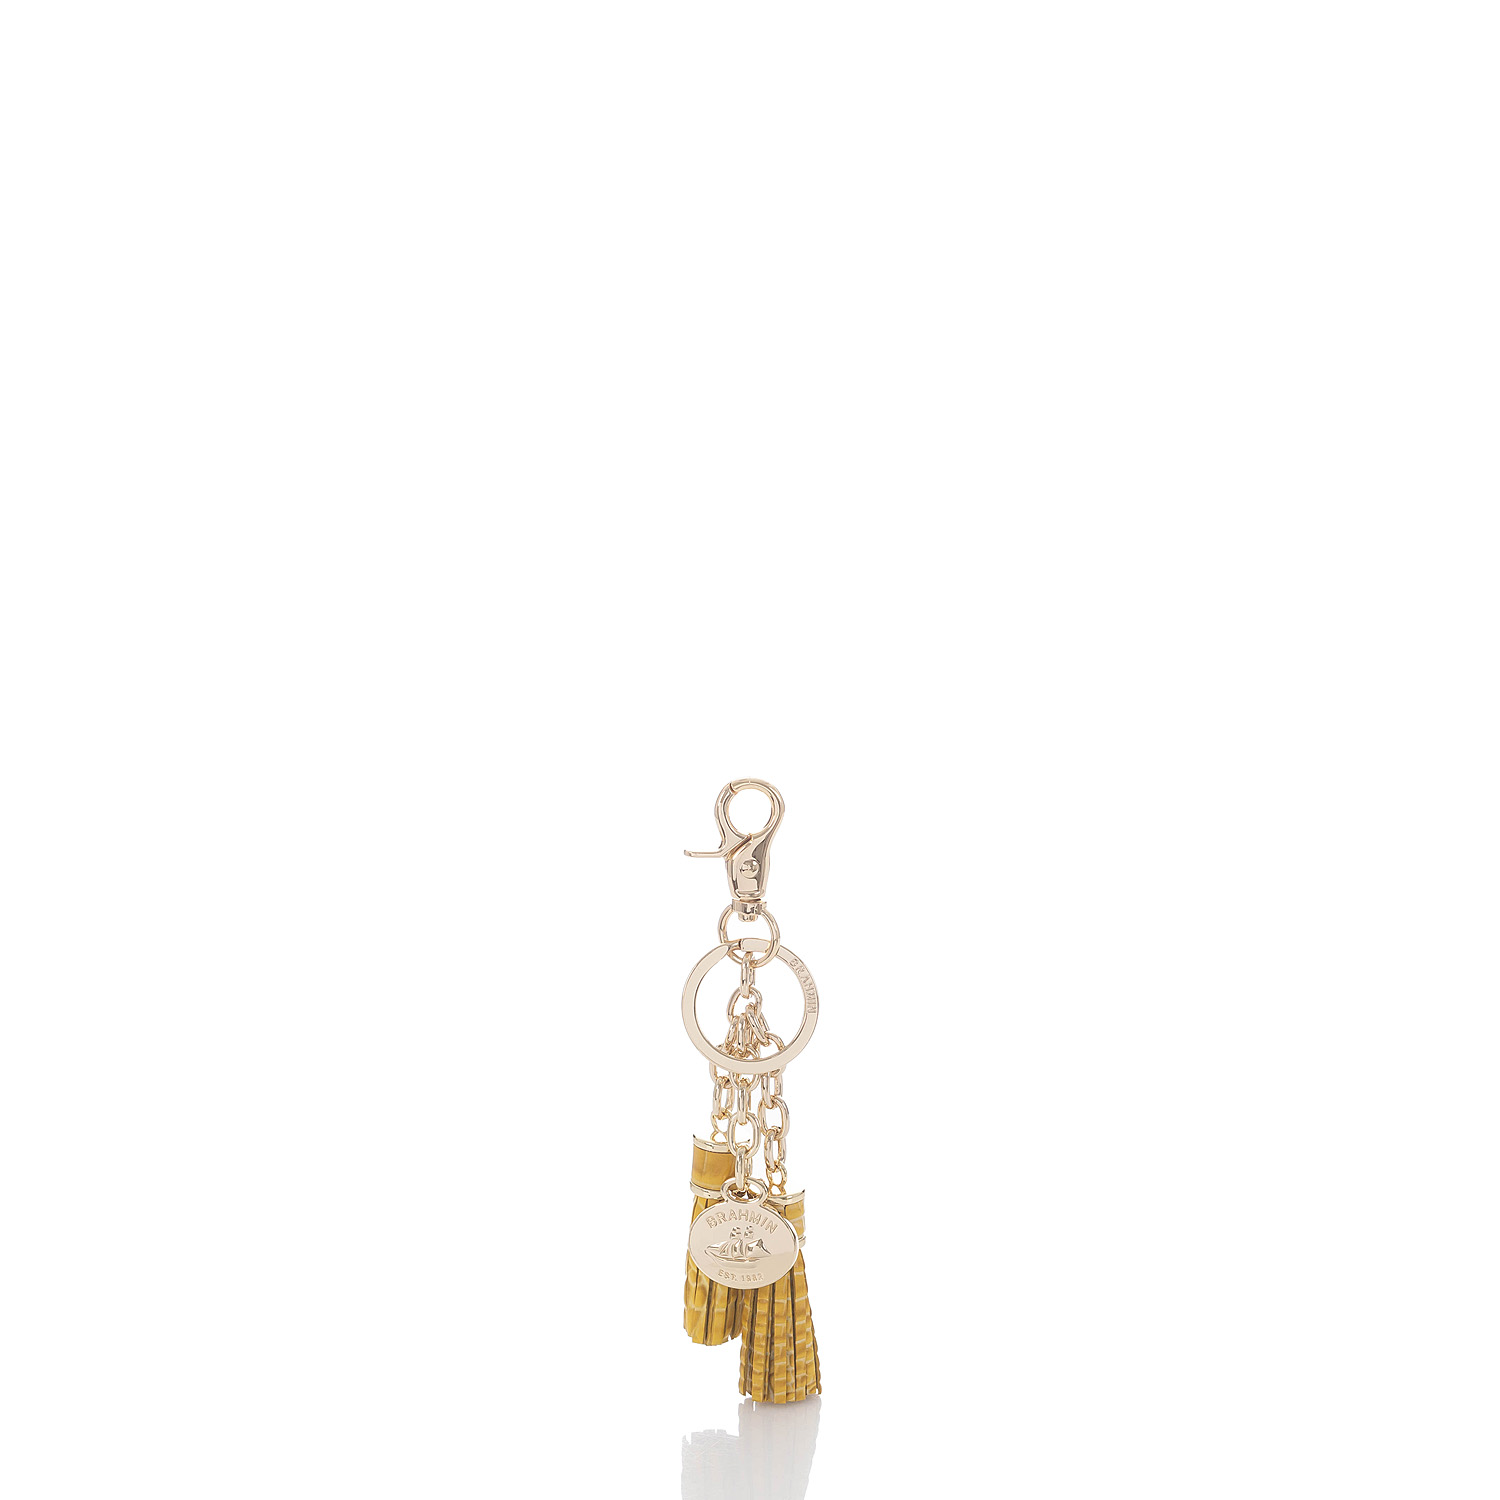 Tassel Key Ring Sunflower Melbourne